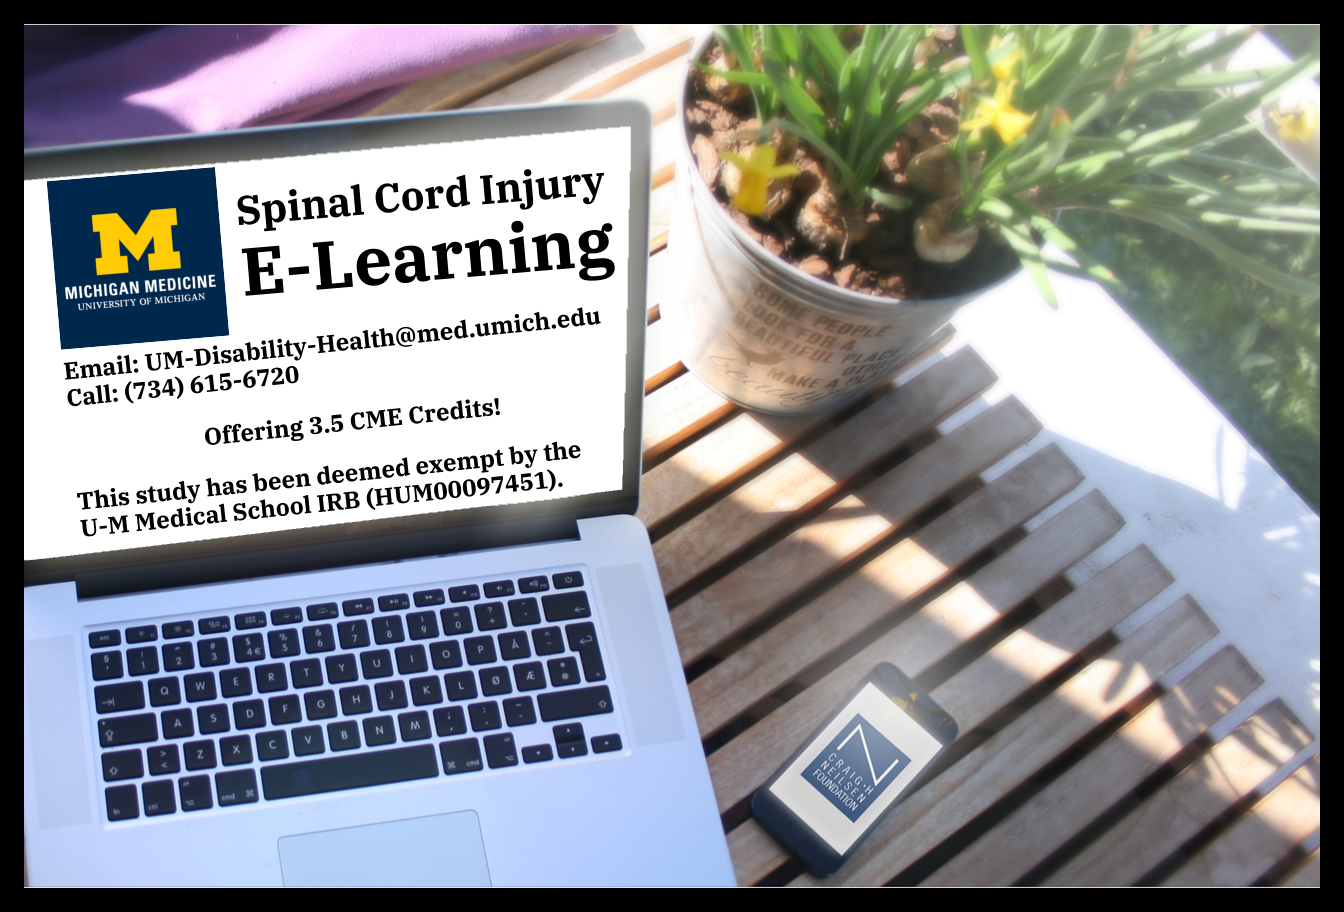 We offer an e-learning course about working with patients who have Spinal Cord Injury. Full details about the course are described next.